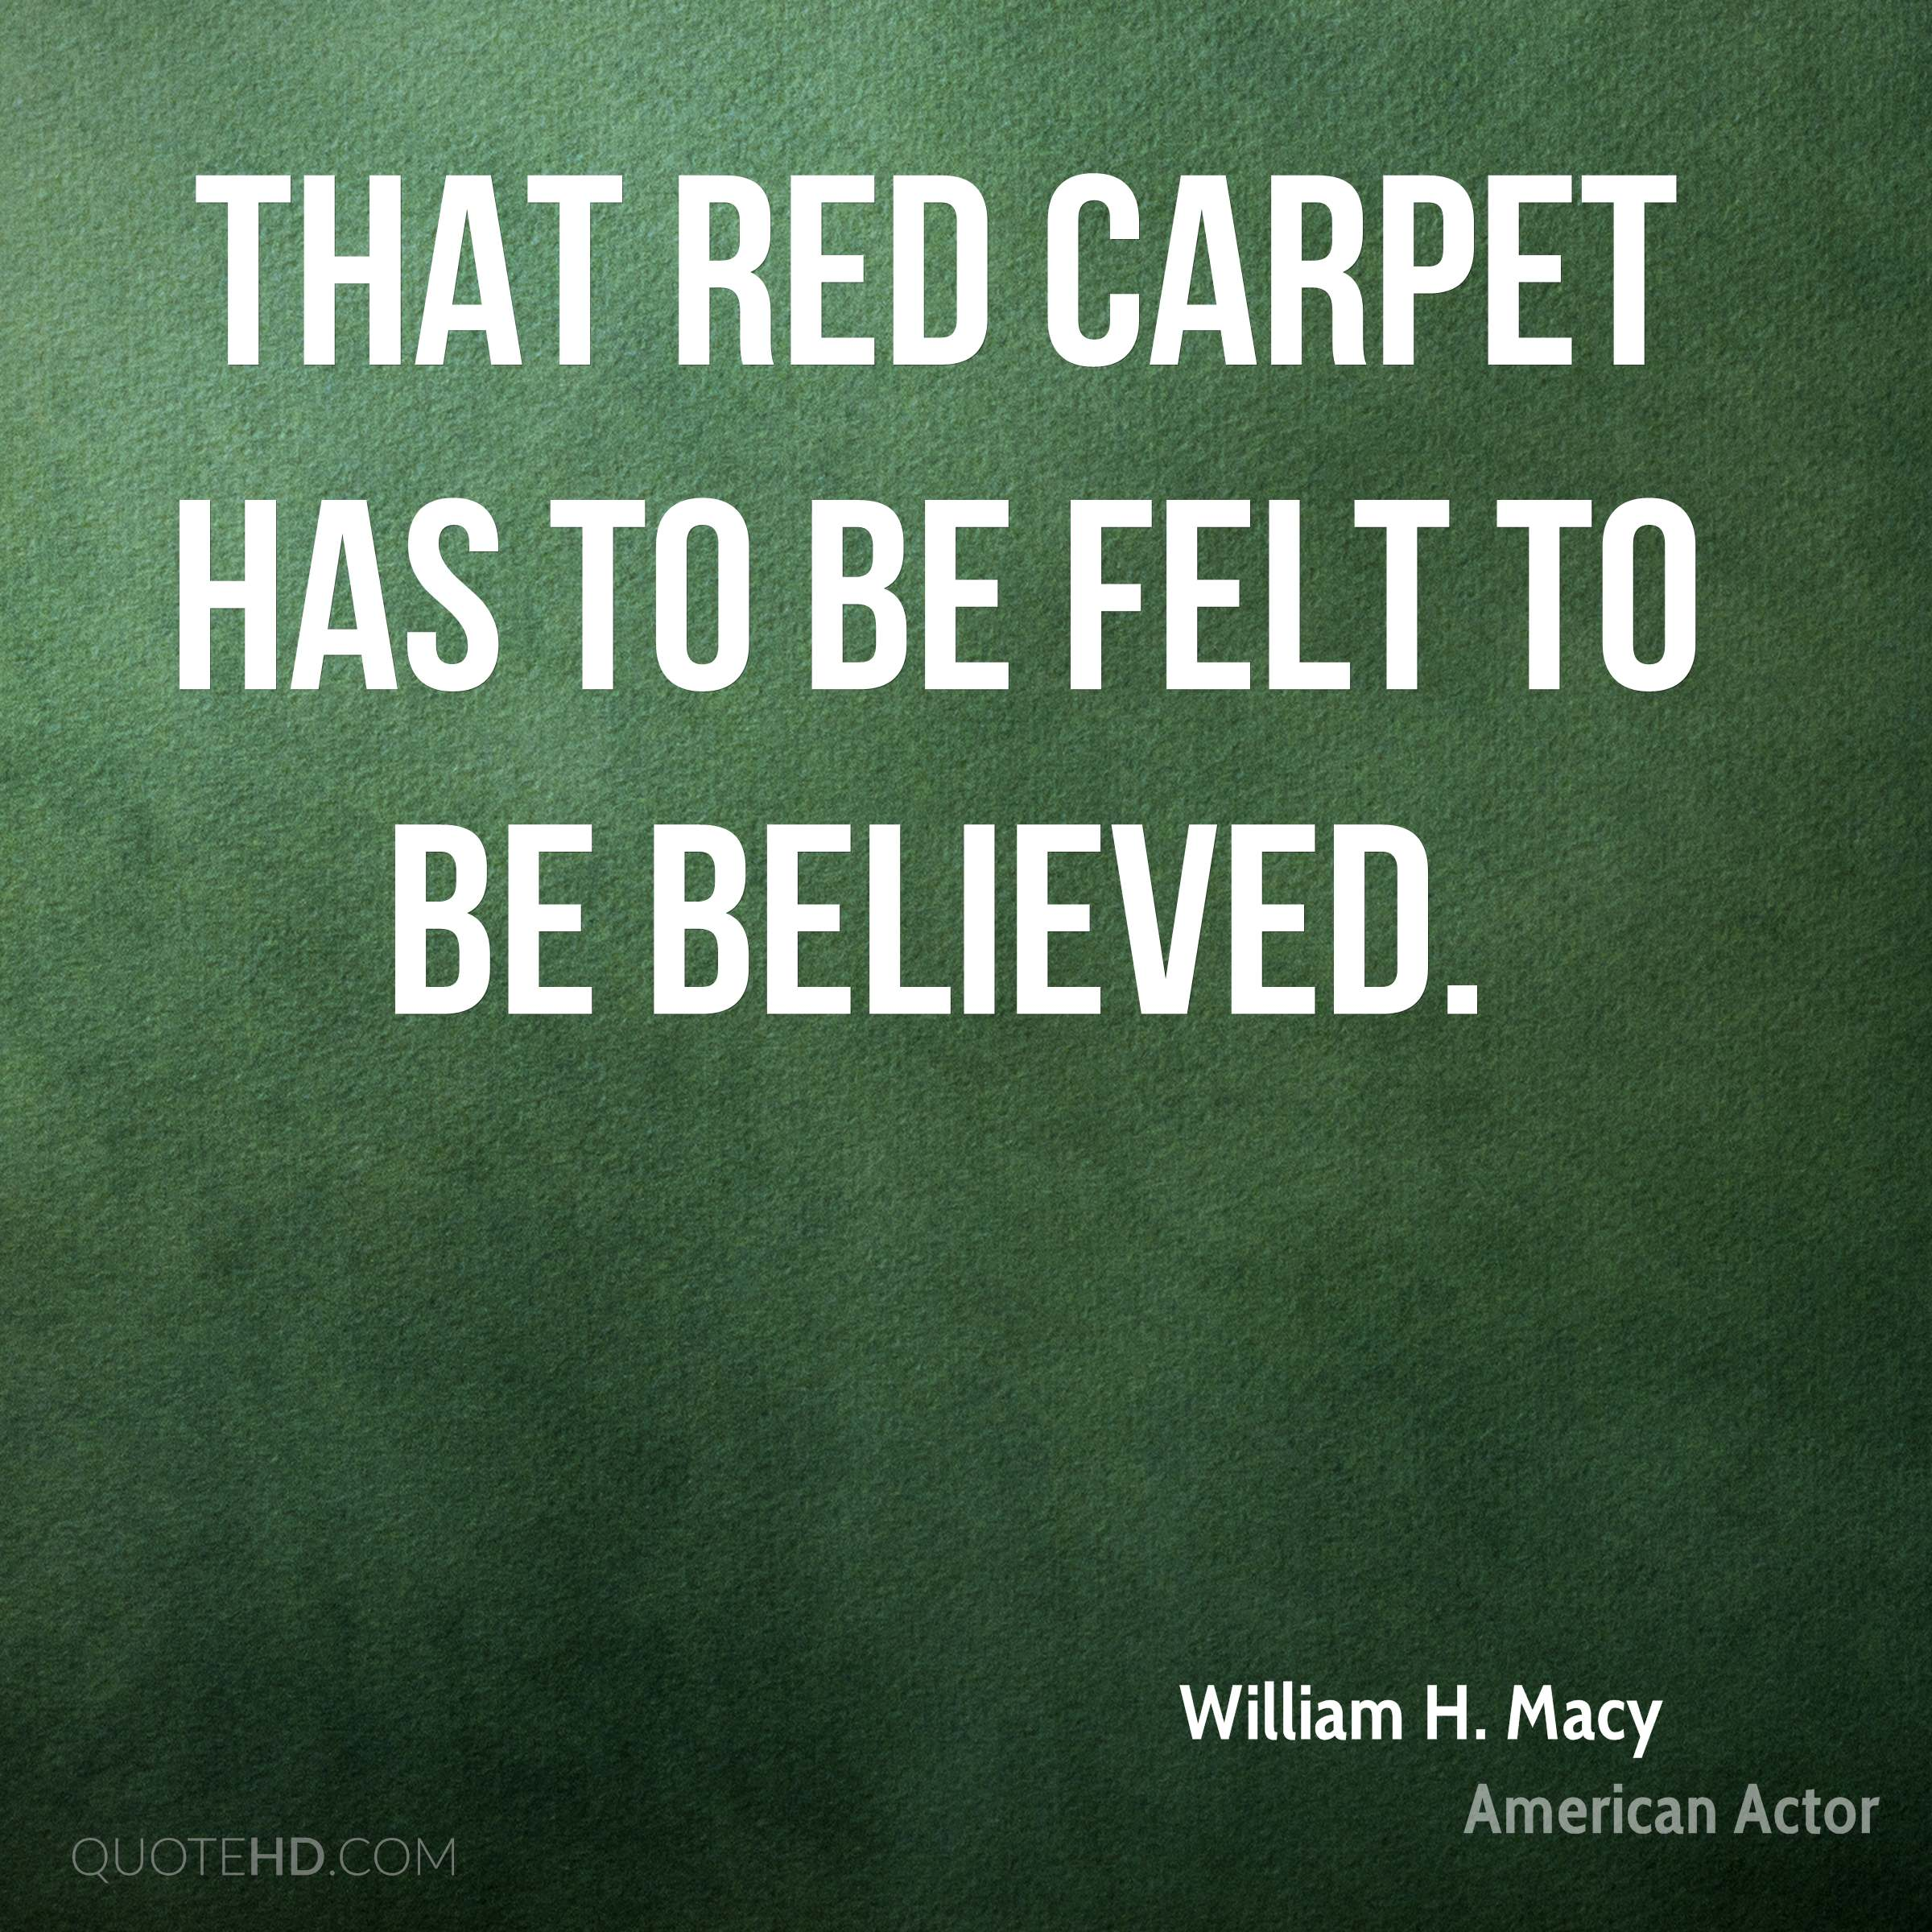 Carpet Quote William Hmacy Quotes  Quotehd